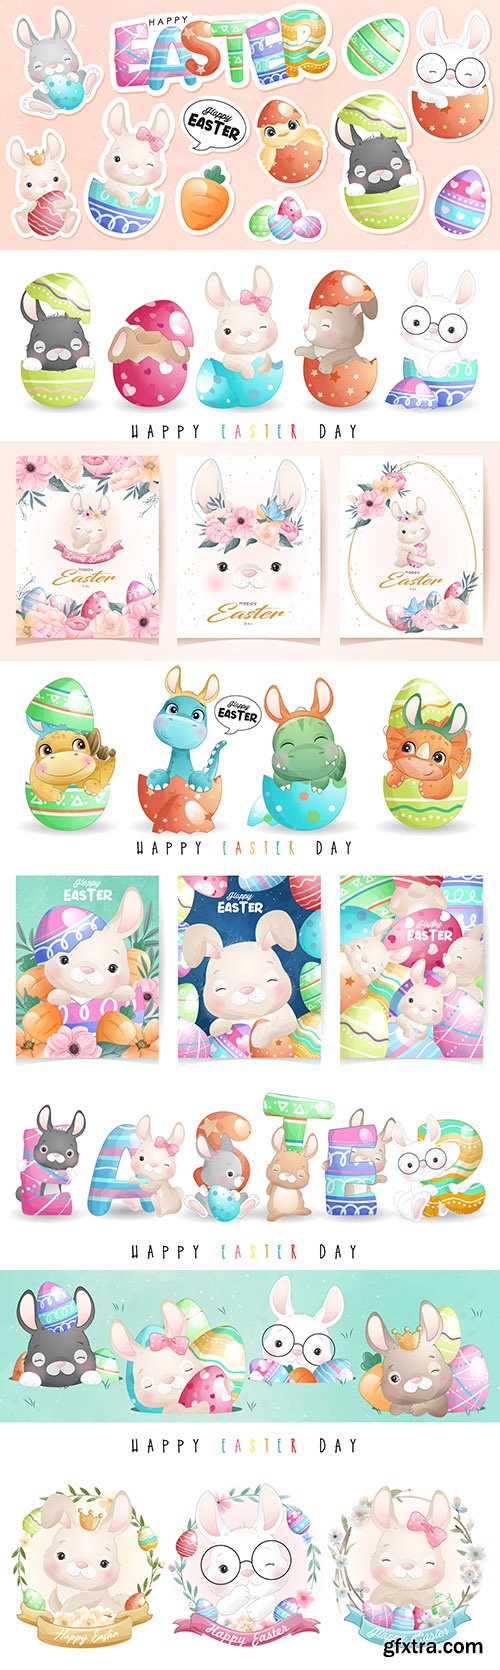 Cute rabbit illustrations and stickers for happy Easter day